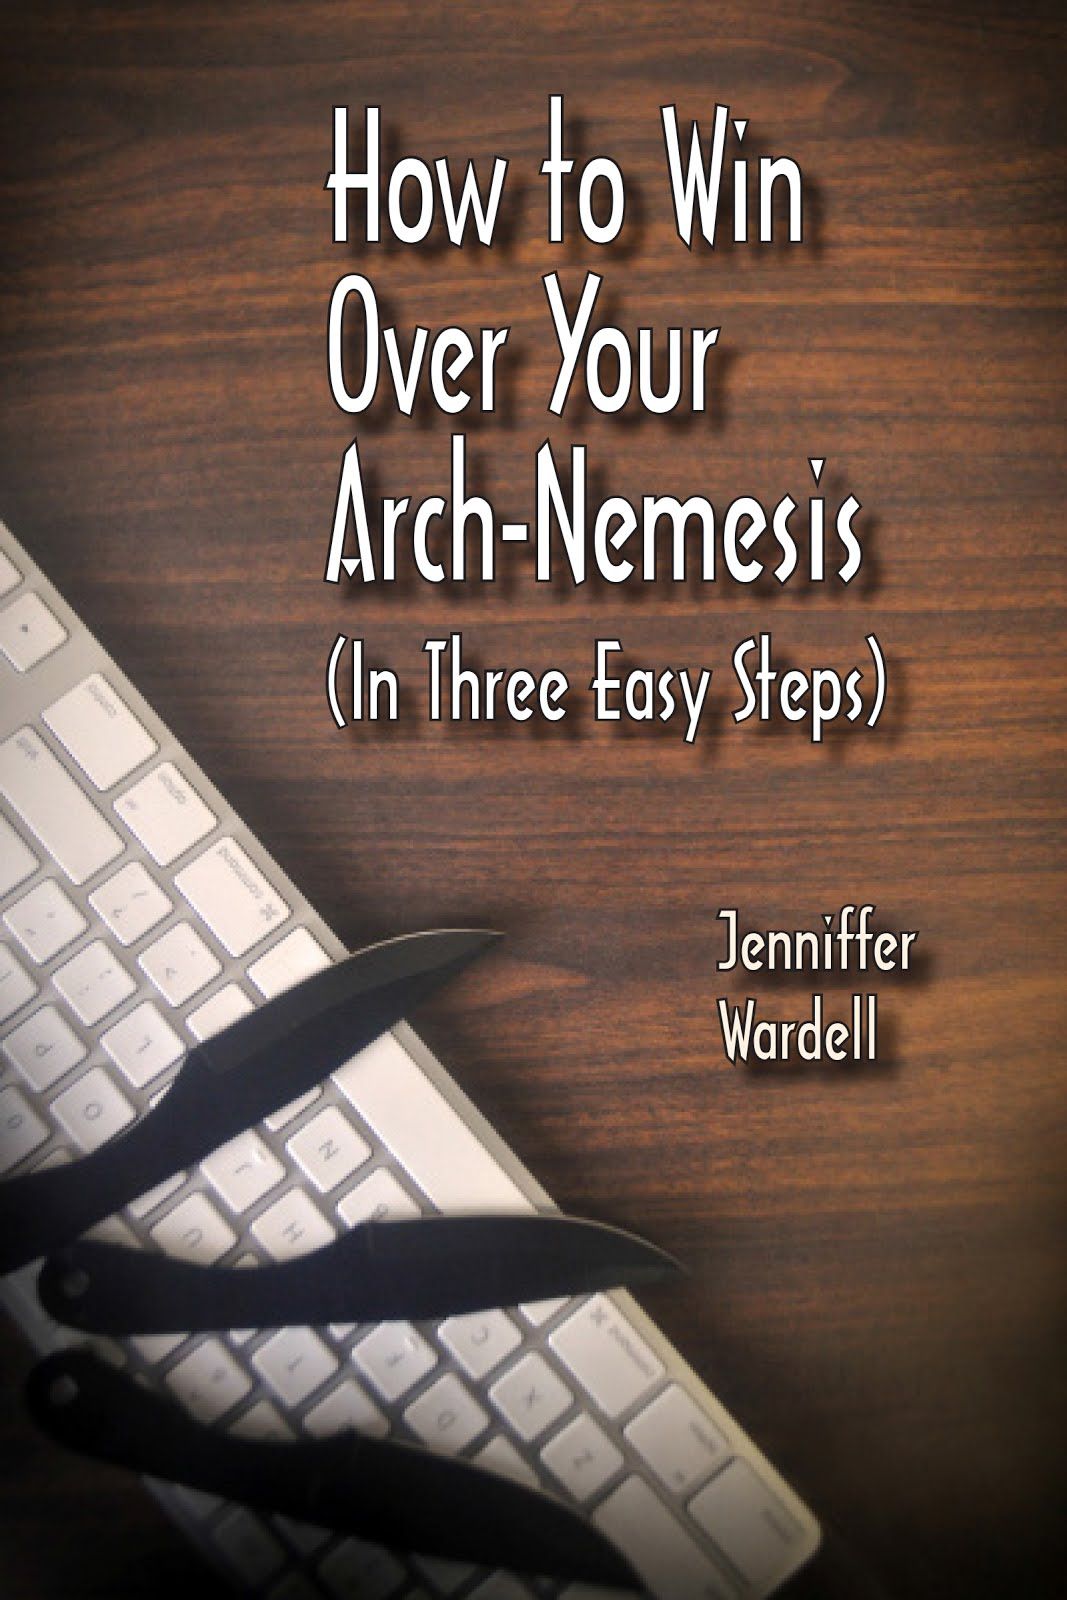 How to Win Over Your Arch-Nemesis (In Three Easy Steps) 99 cent e-book